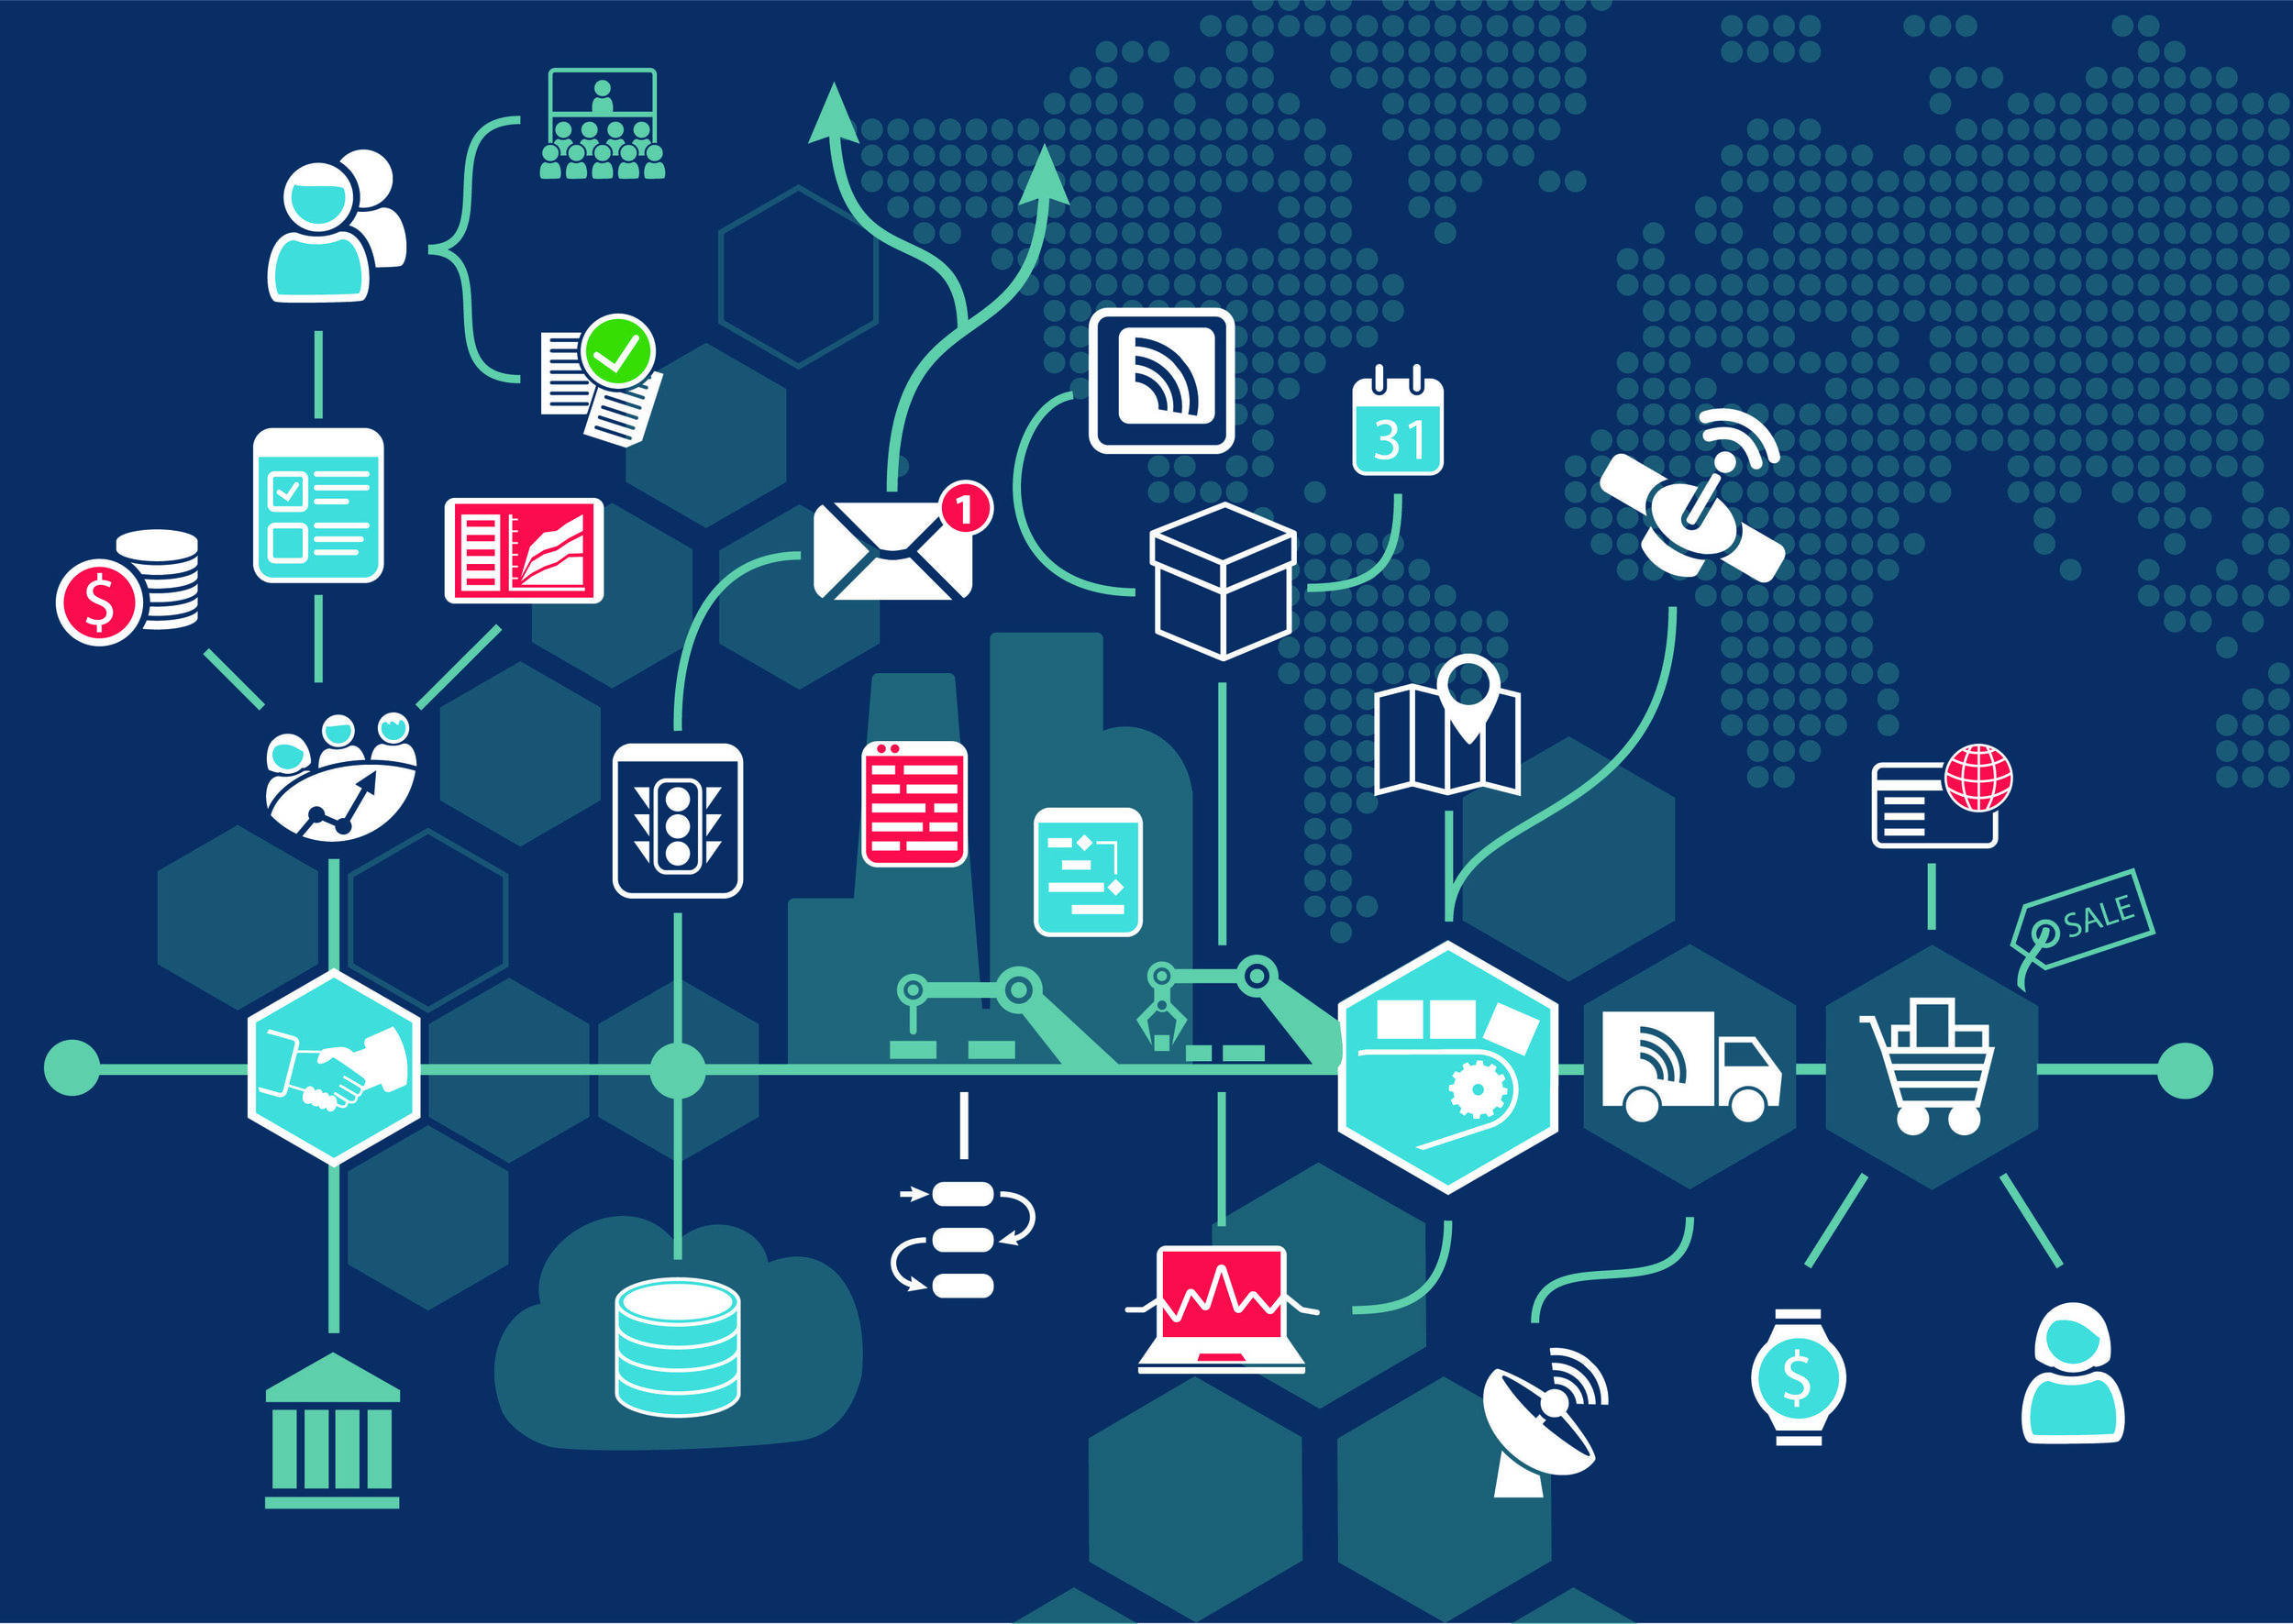 Automation & IoT     We can help organizations understand how to use AI to better evaluate and assess data received from a variety of IoT enabled automated devices .